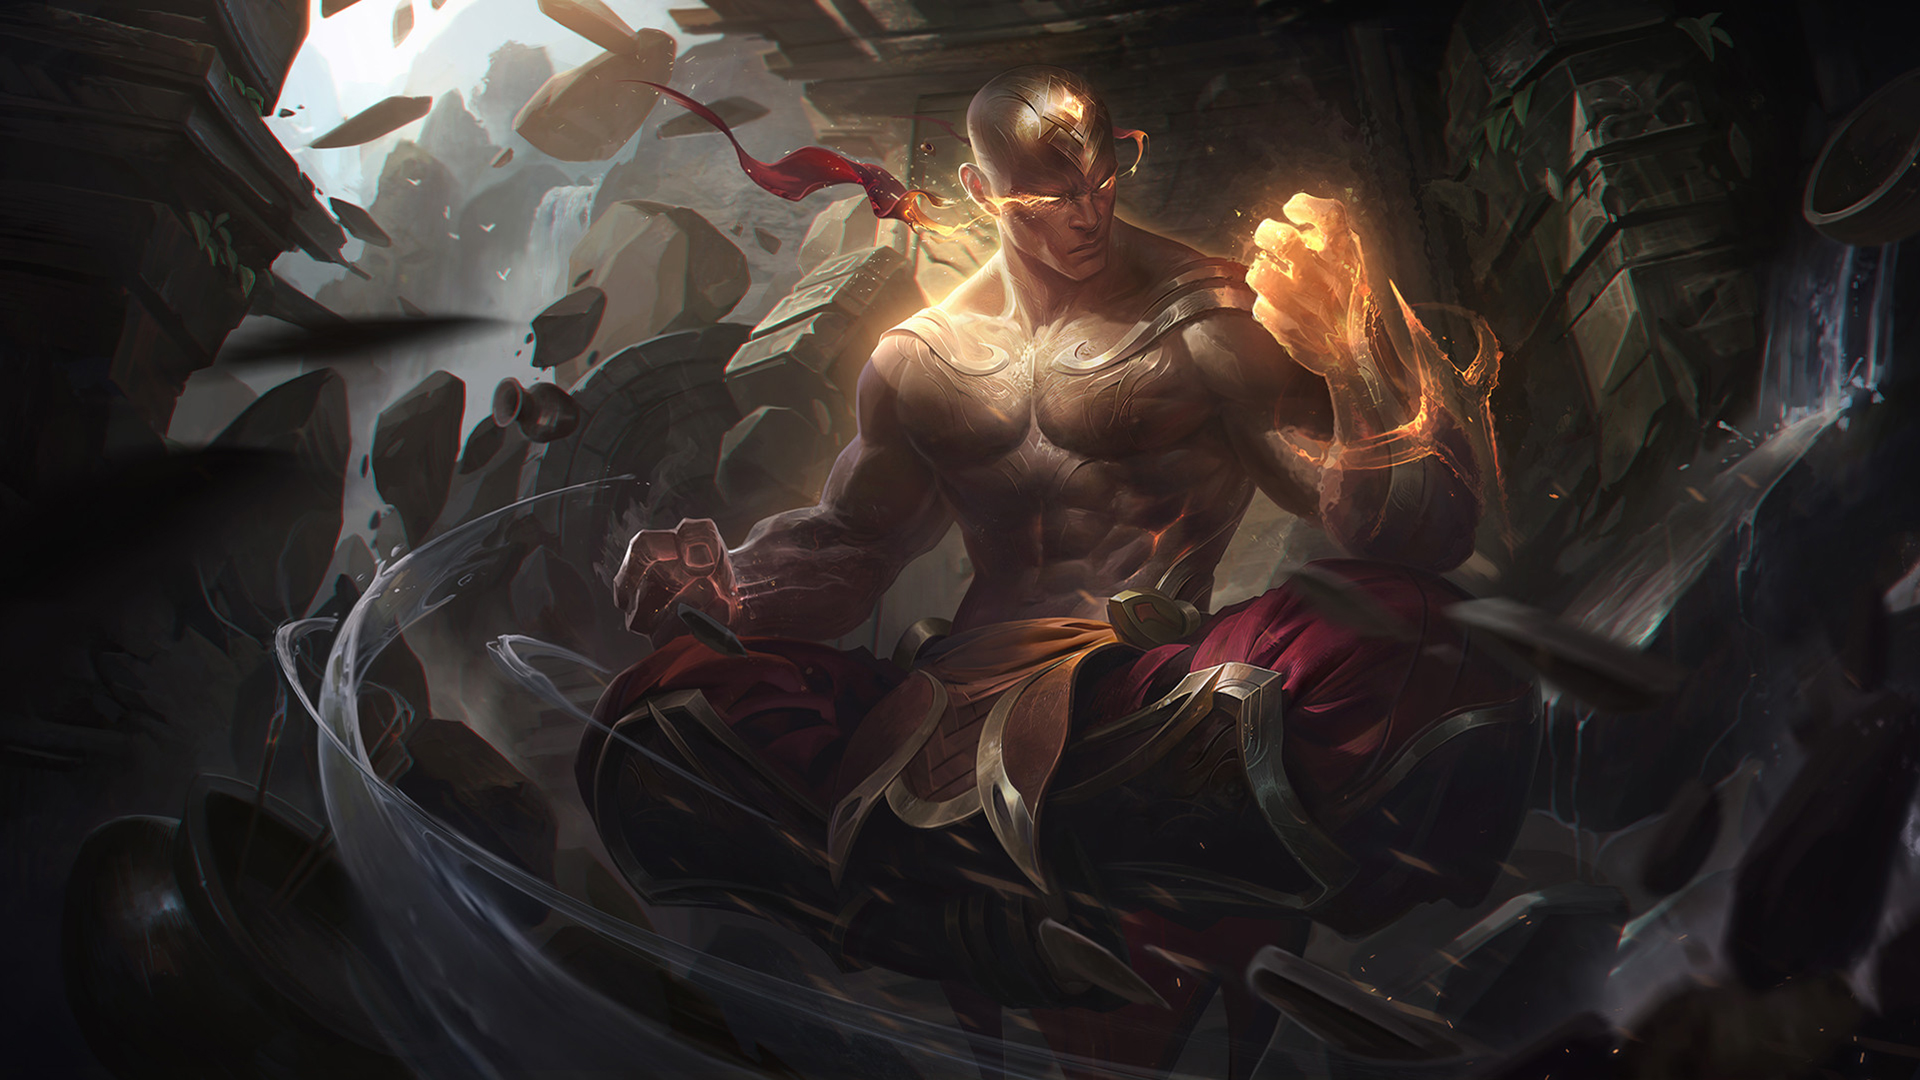 God Fist Lee Sin League of Legends Artwork143706758 - God Fist Lee Sin League of Legends Artwork - Sin, lol wallpaper, Lee, League, God, Fist, Artwork